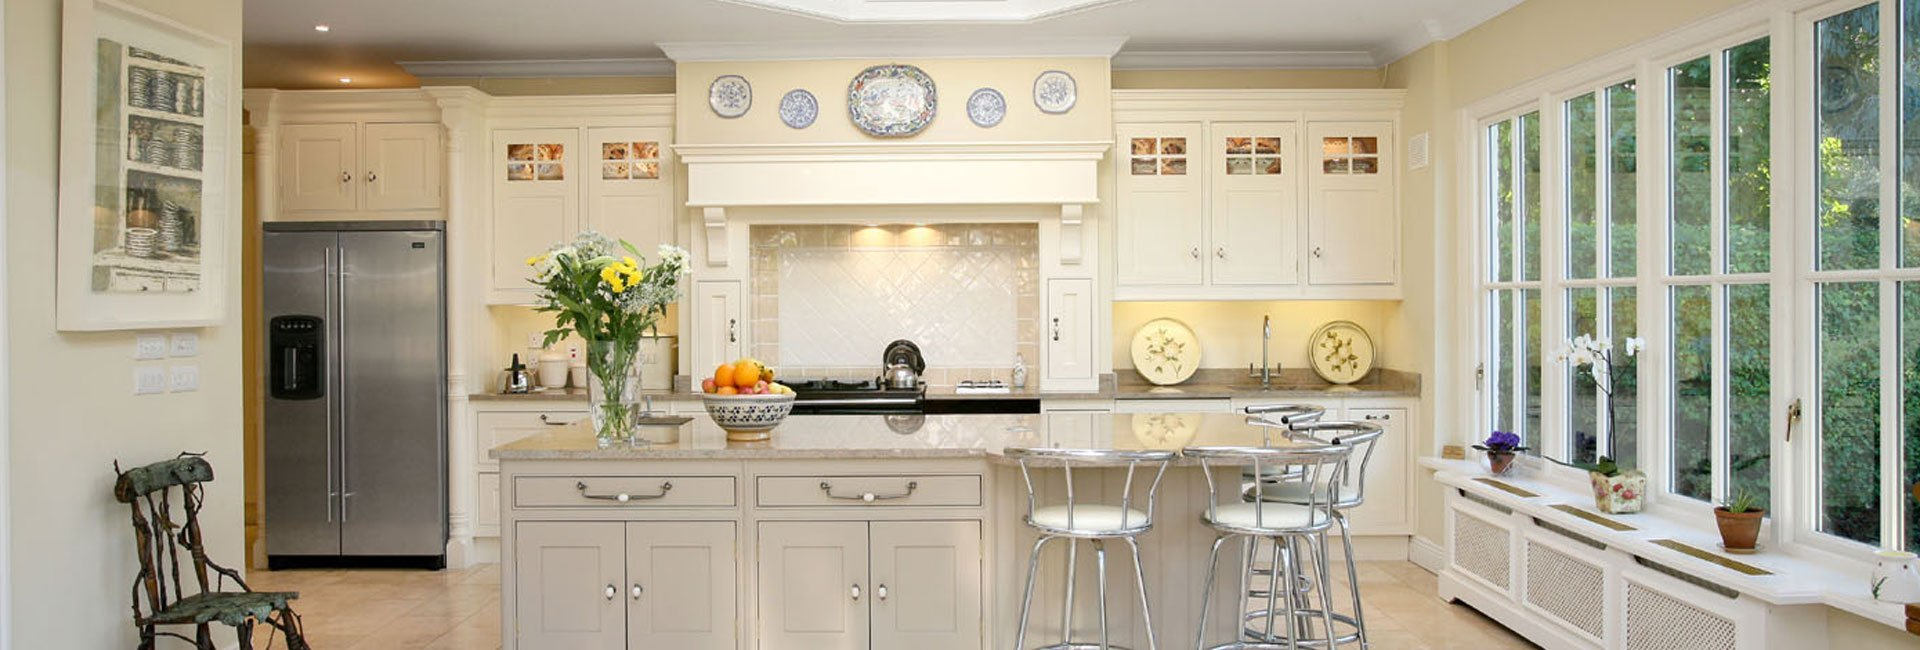 Euan Kitchen Cabinets | Kitchen Fitting Euan Richards Carpentry